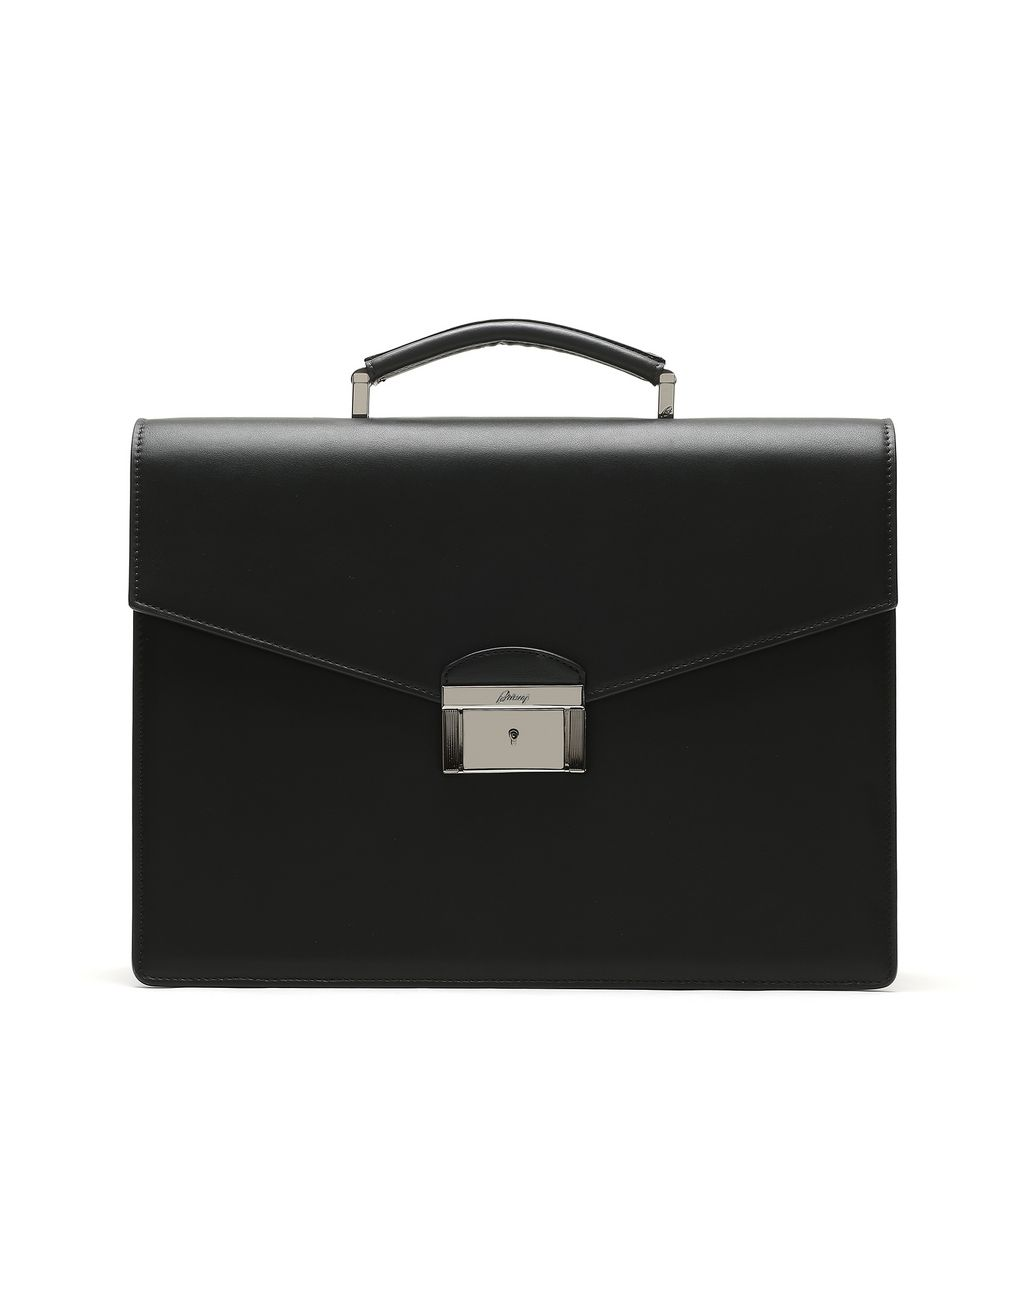 BRIONI Briefcase Nera in Pelle di Vitello Business Uomo f